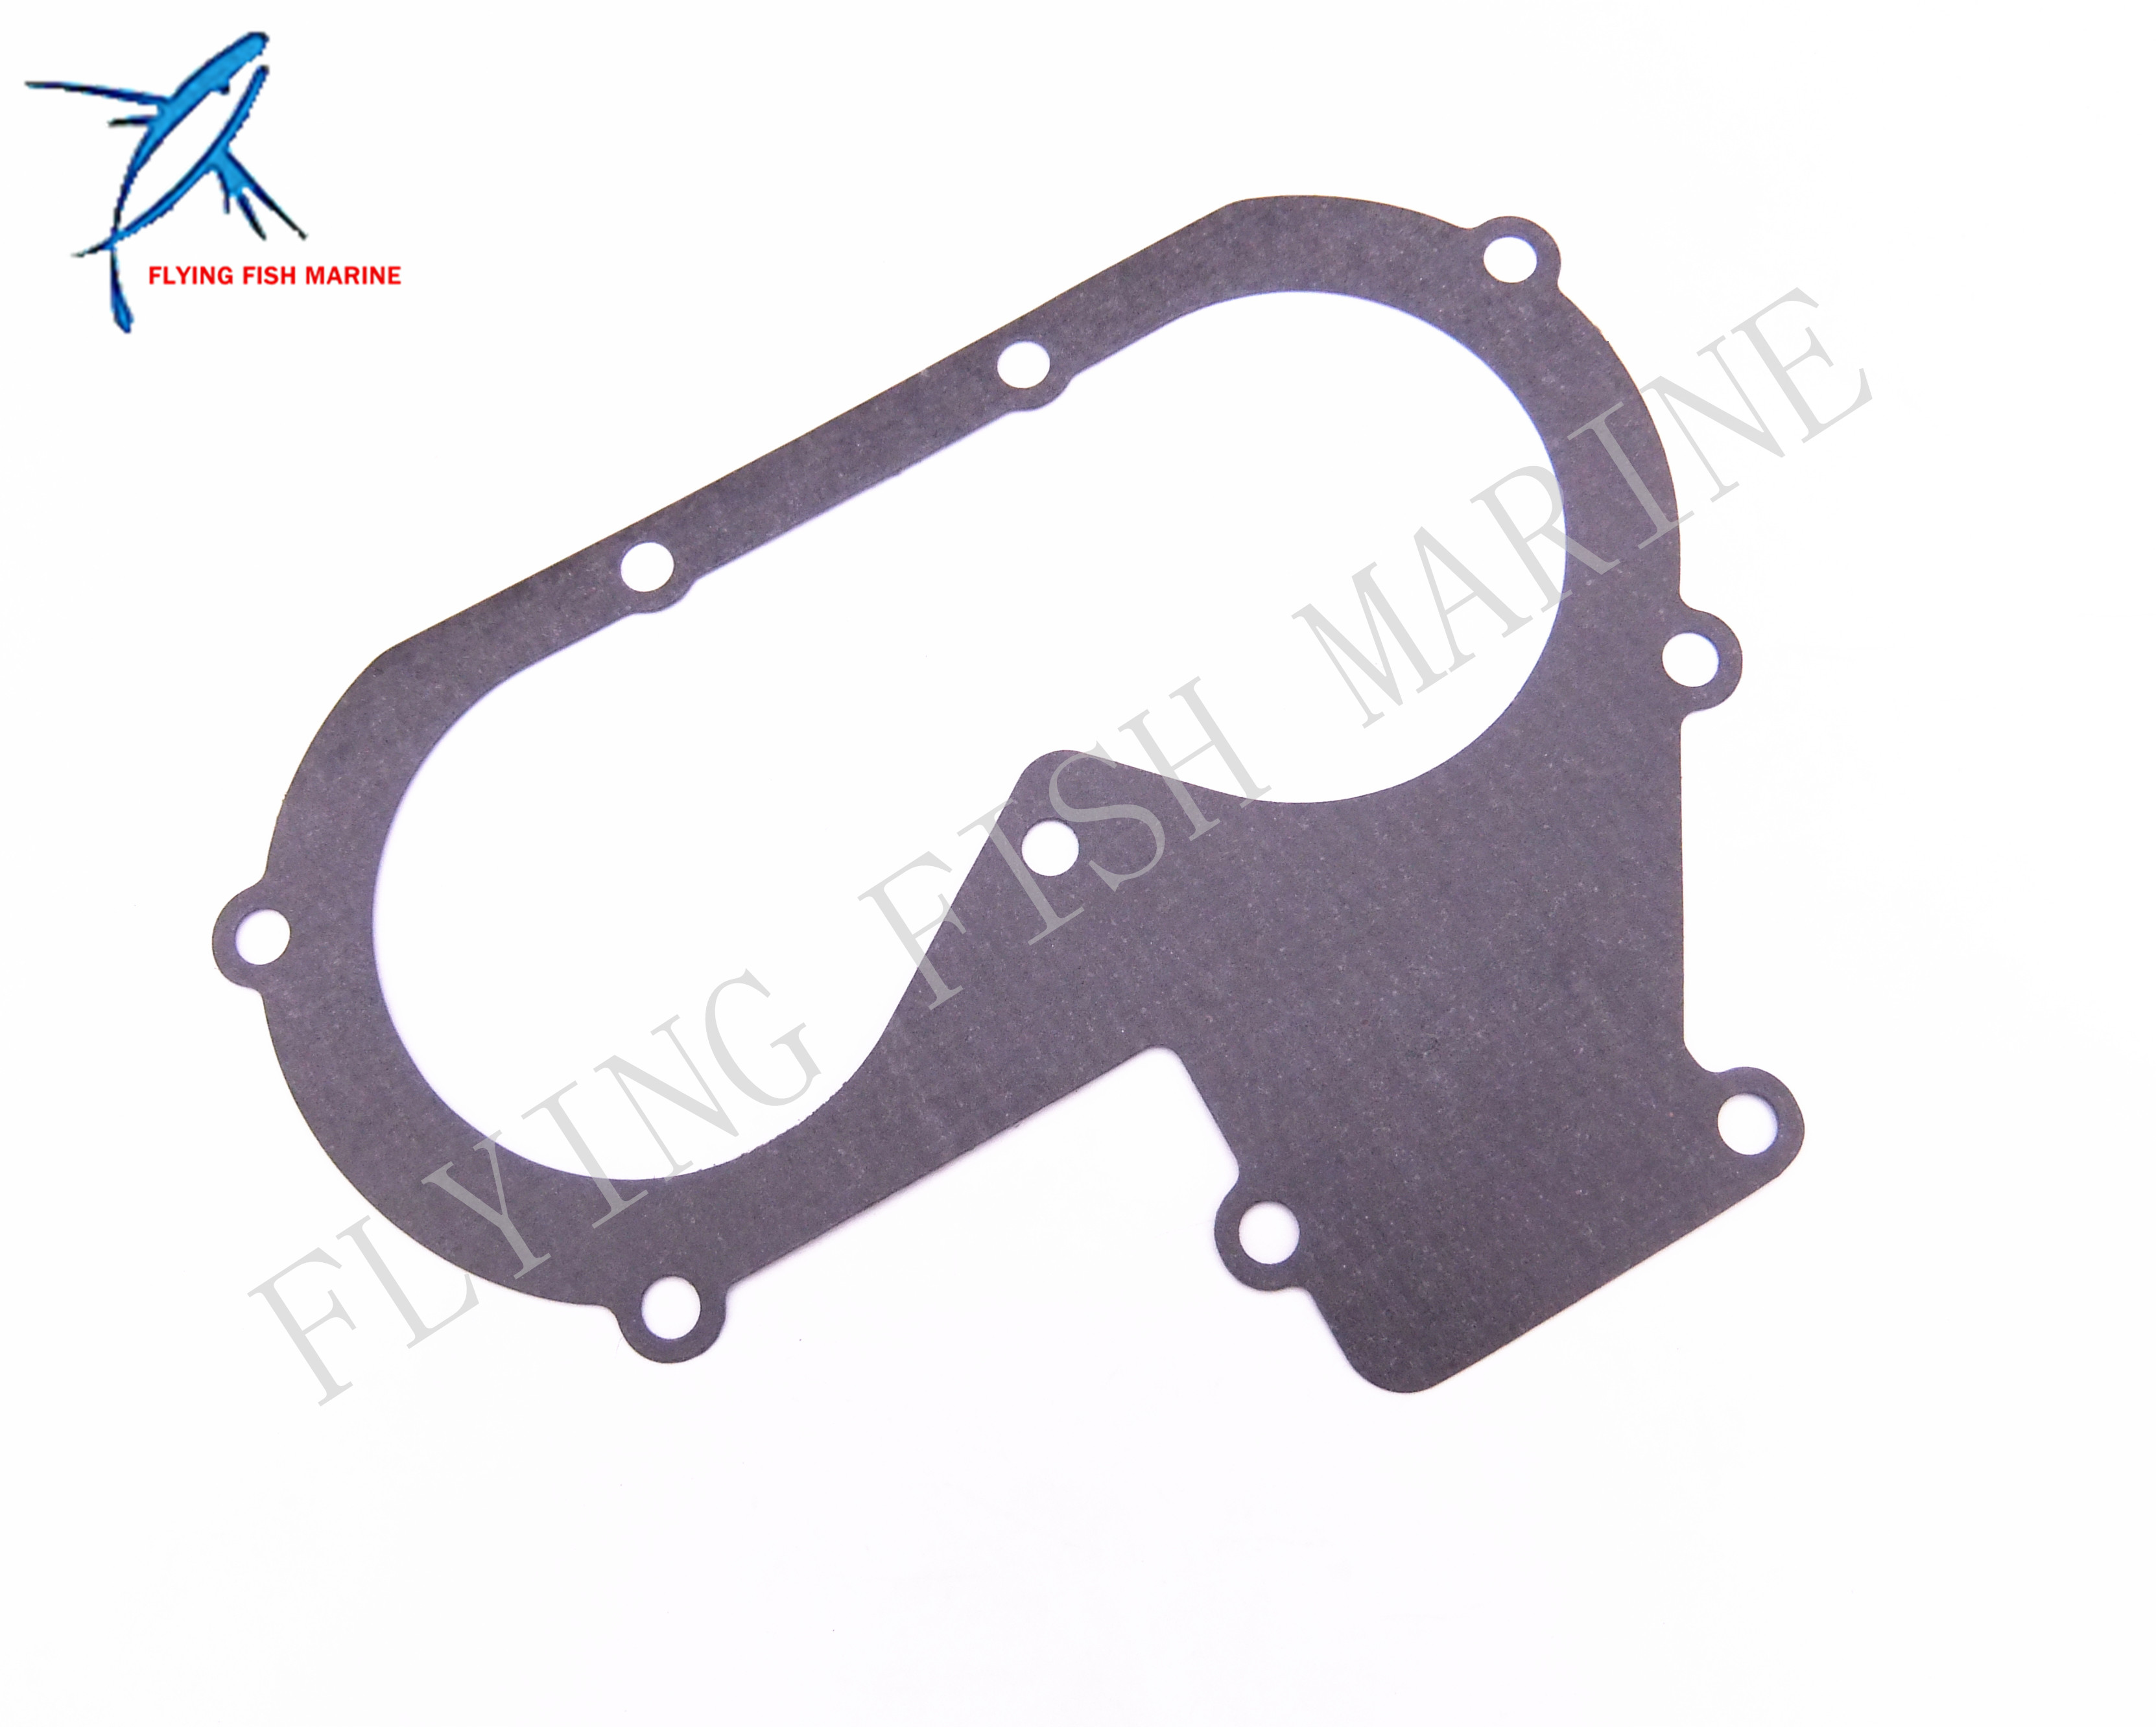 Outboard Engine T20-06000013 Intake Valve Seat Gasket for Parsun 2-Stroke T20 T25 T30A Boat Motor Free Shipping